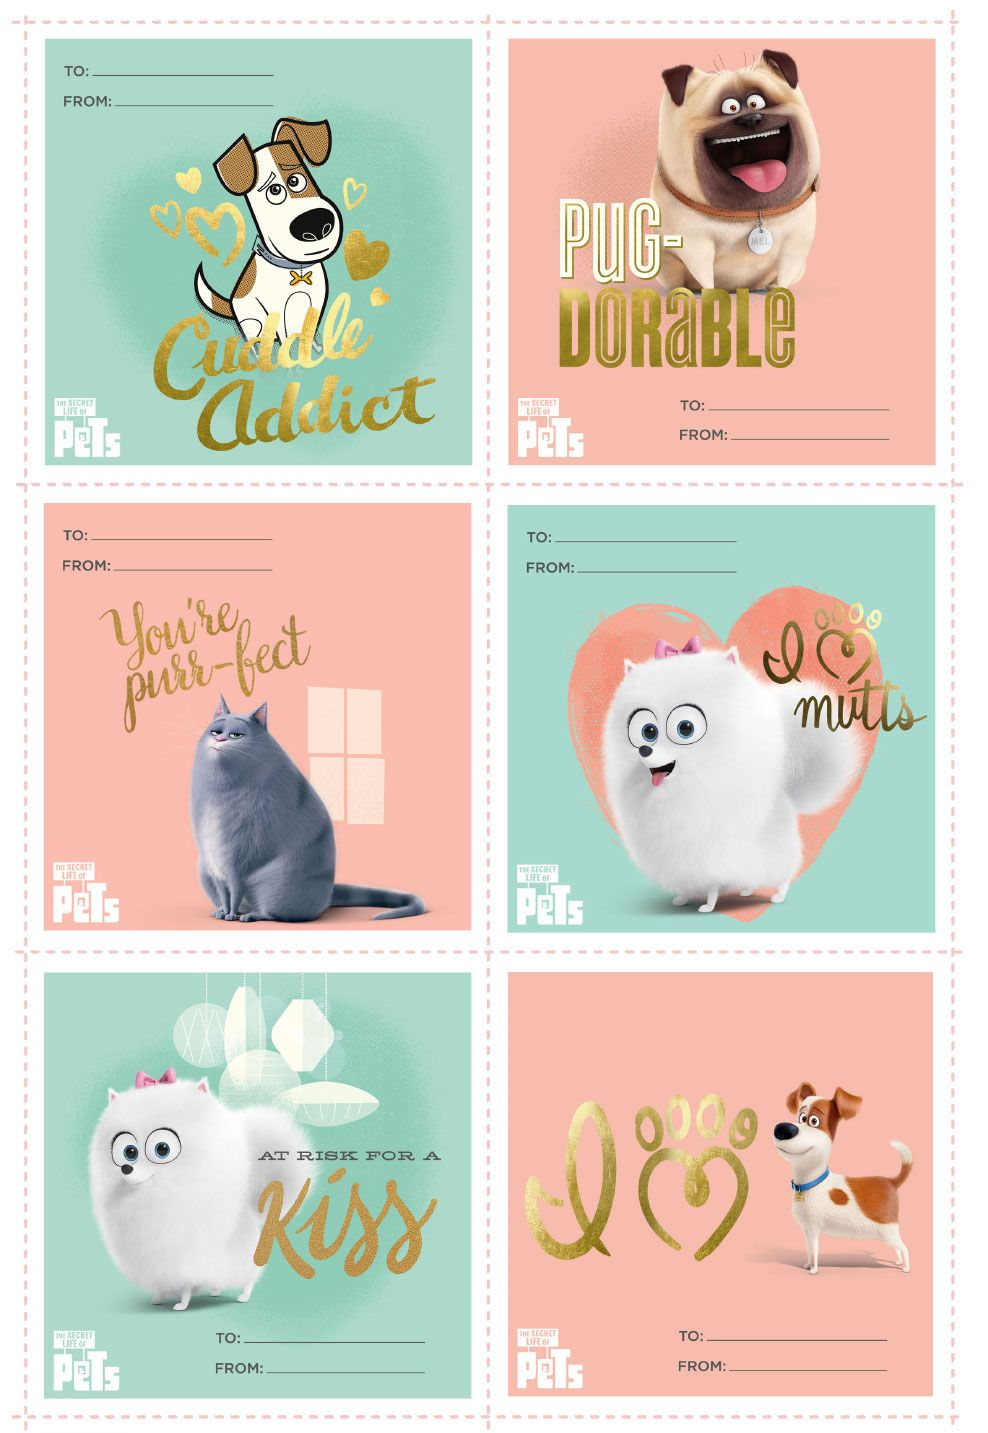 pets valentines day cards la vida secreta de tus etiquetas summit pinterest. Black Bedroom Furniture Sets. Home Design Ideas